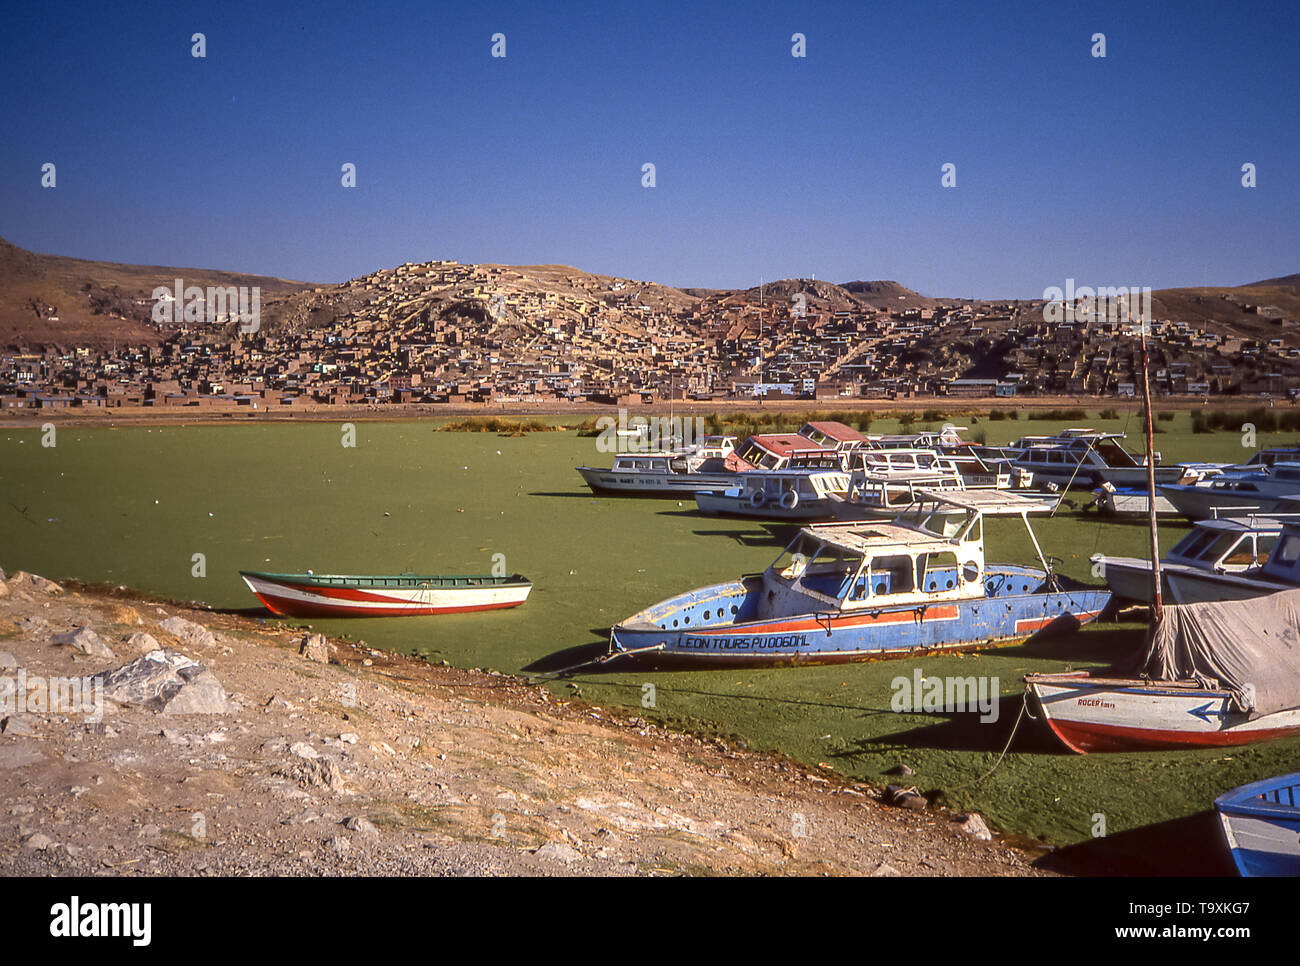 Boats moored on the green waters of Lake Titicaca, Peru. - Stock Image